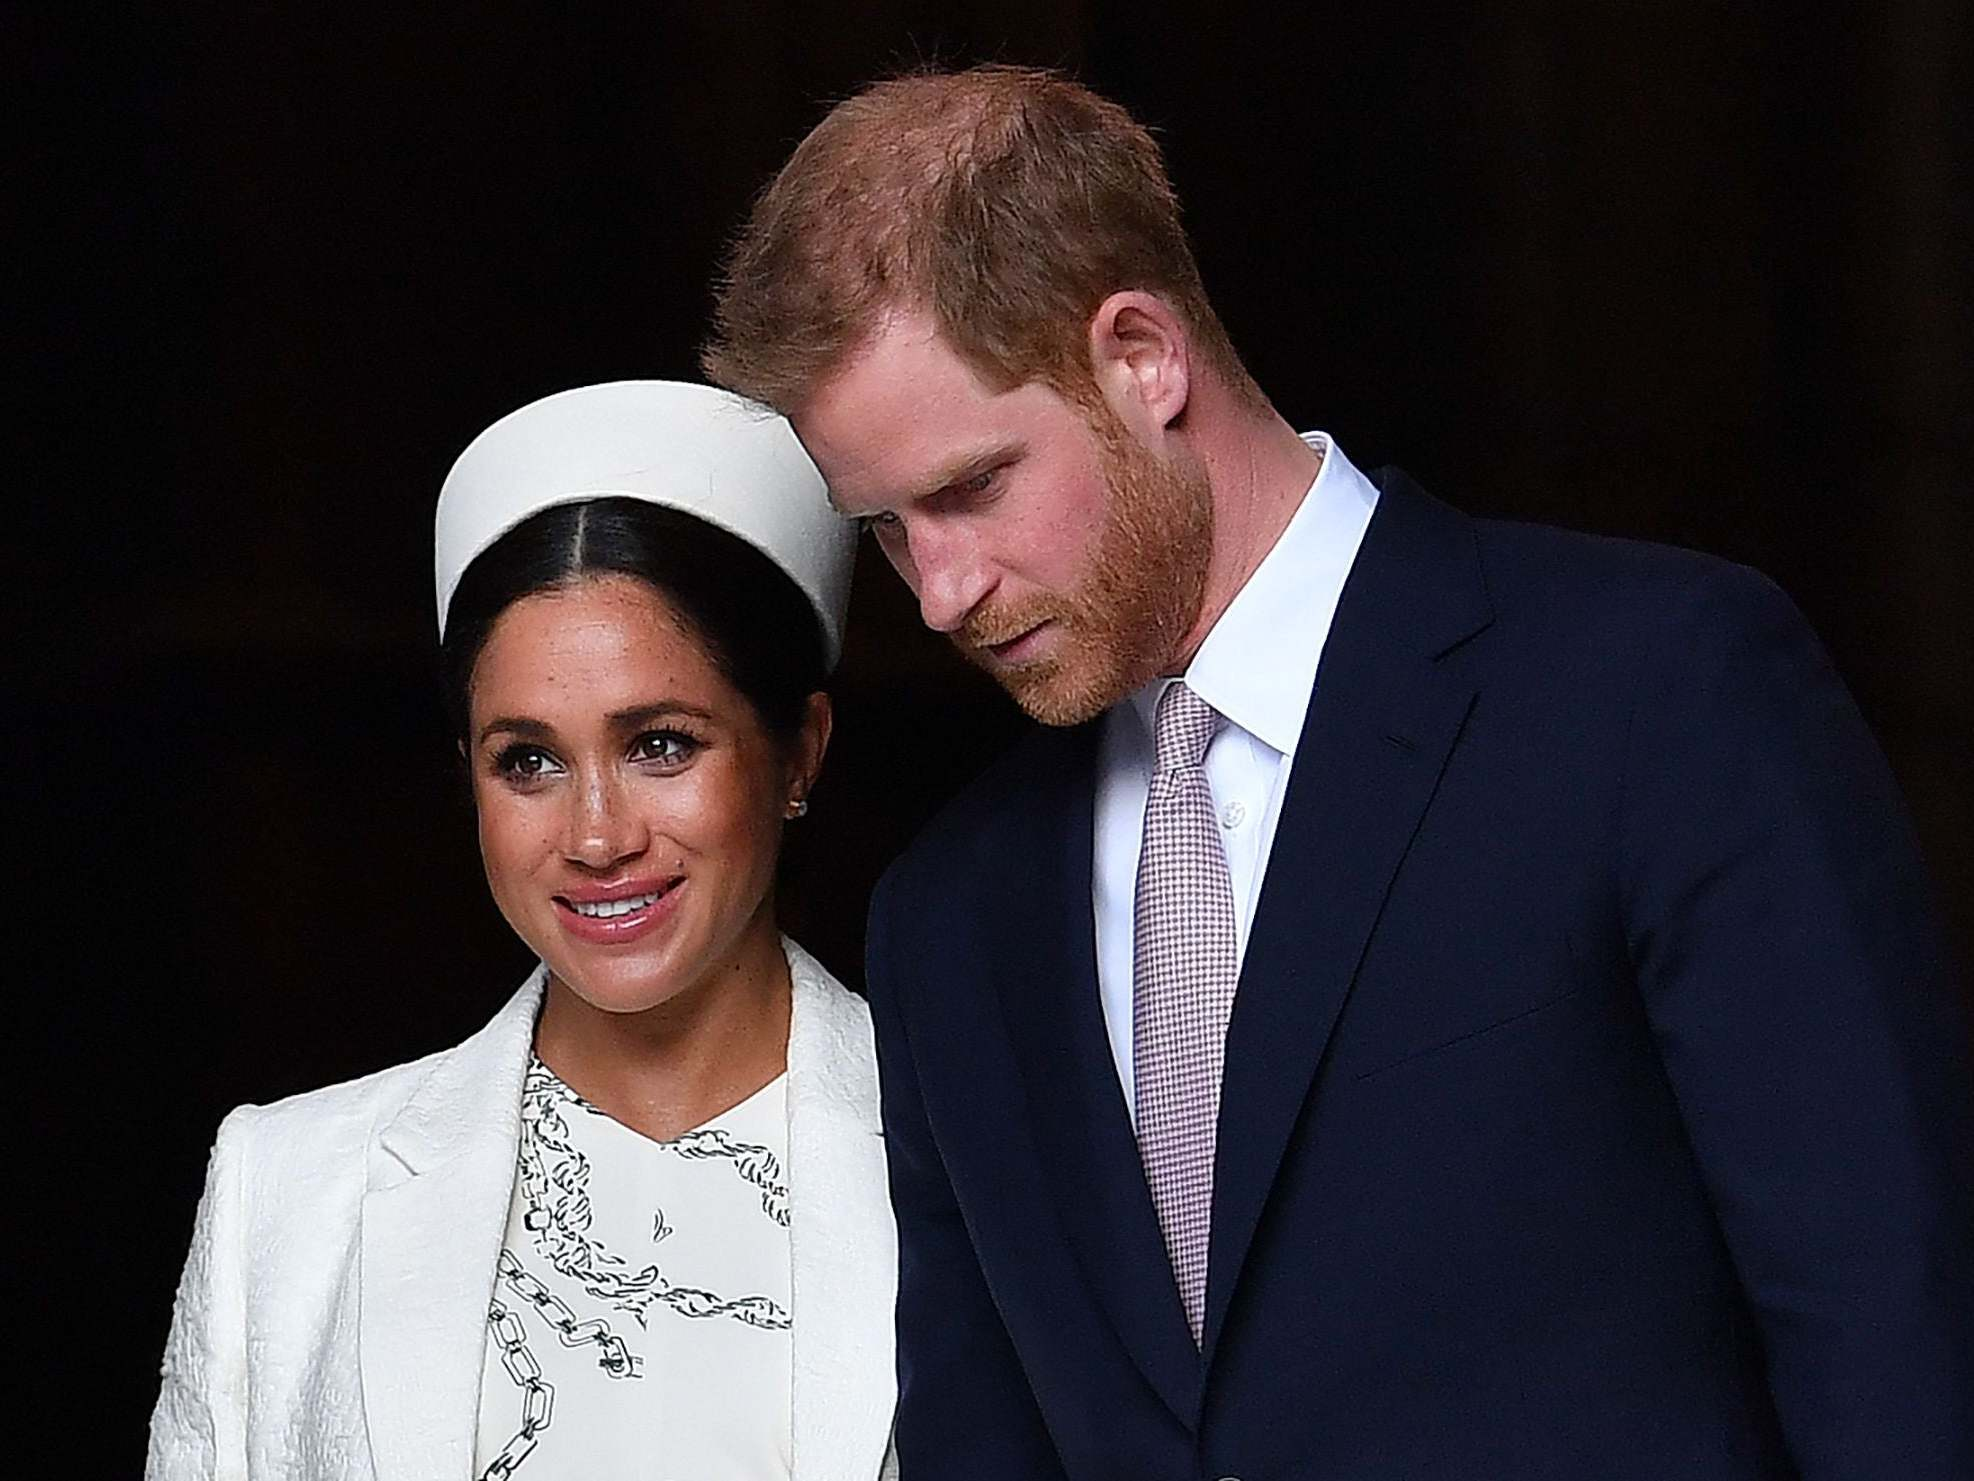 As a matchmaker, I'm thrilled Harry and Meghan are prioritising their marriage